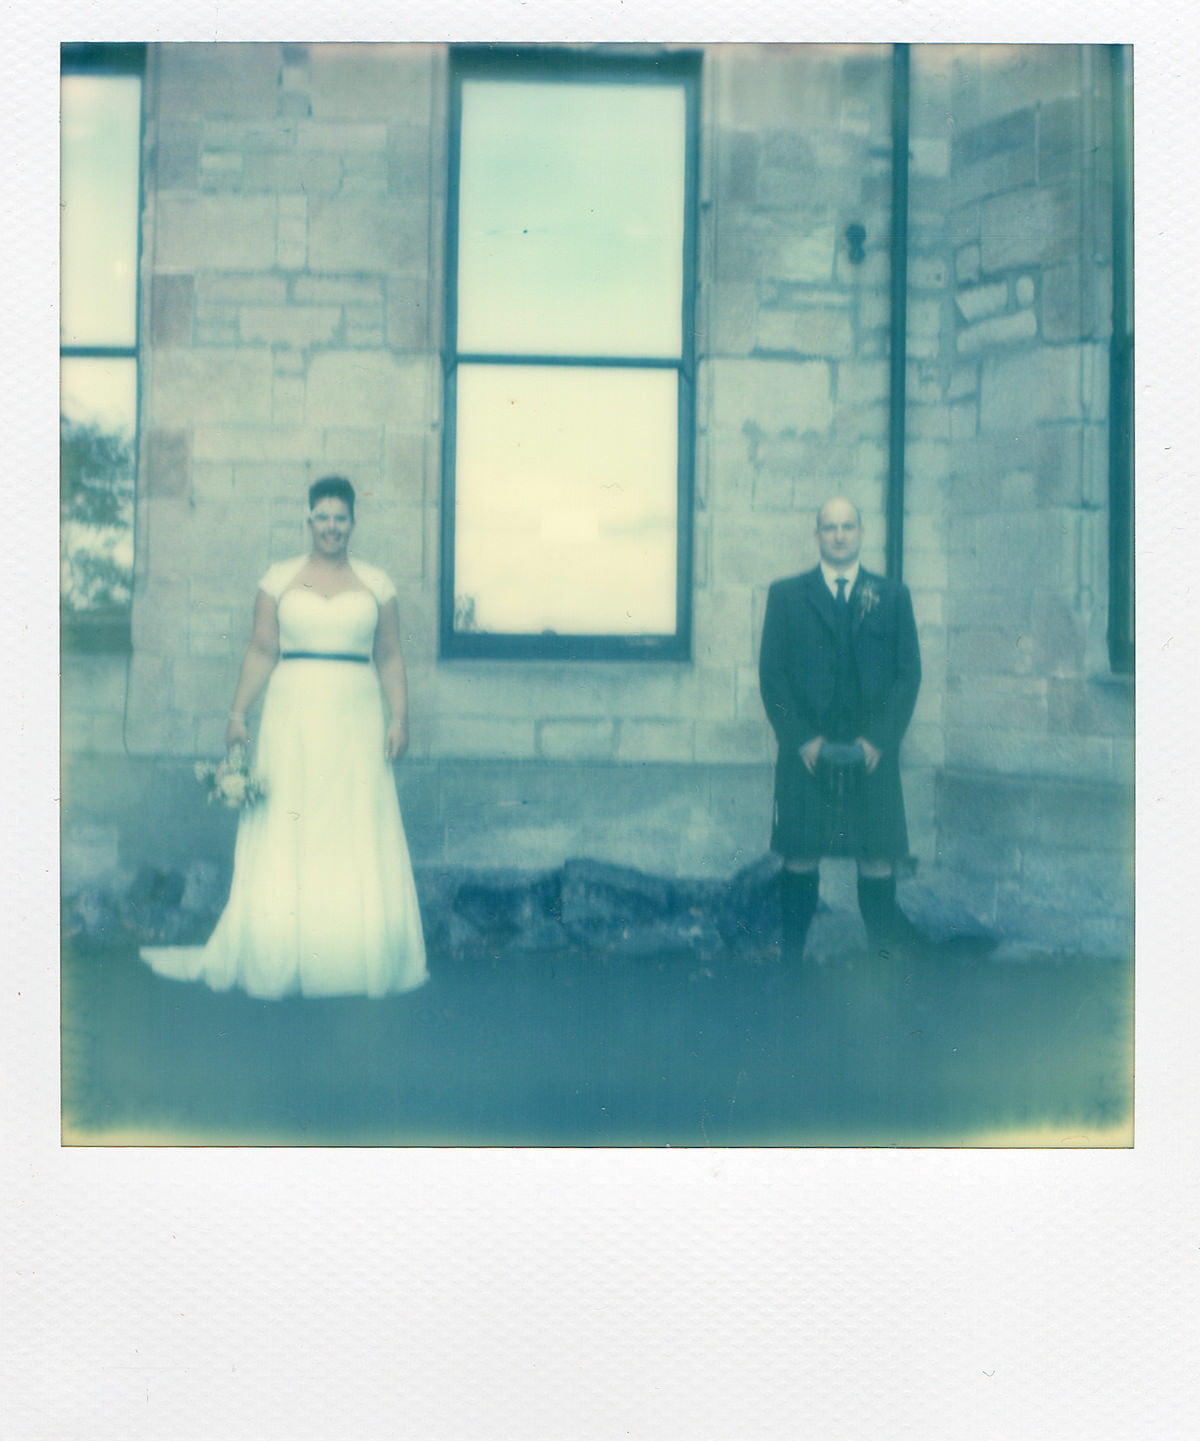 Impossible-Project-Polaroid-Film-Artistic-Quirky-Wedding-Photography-006